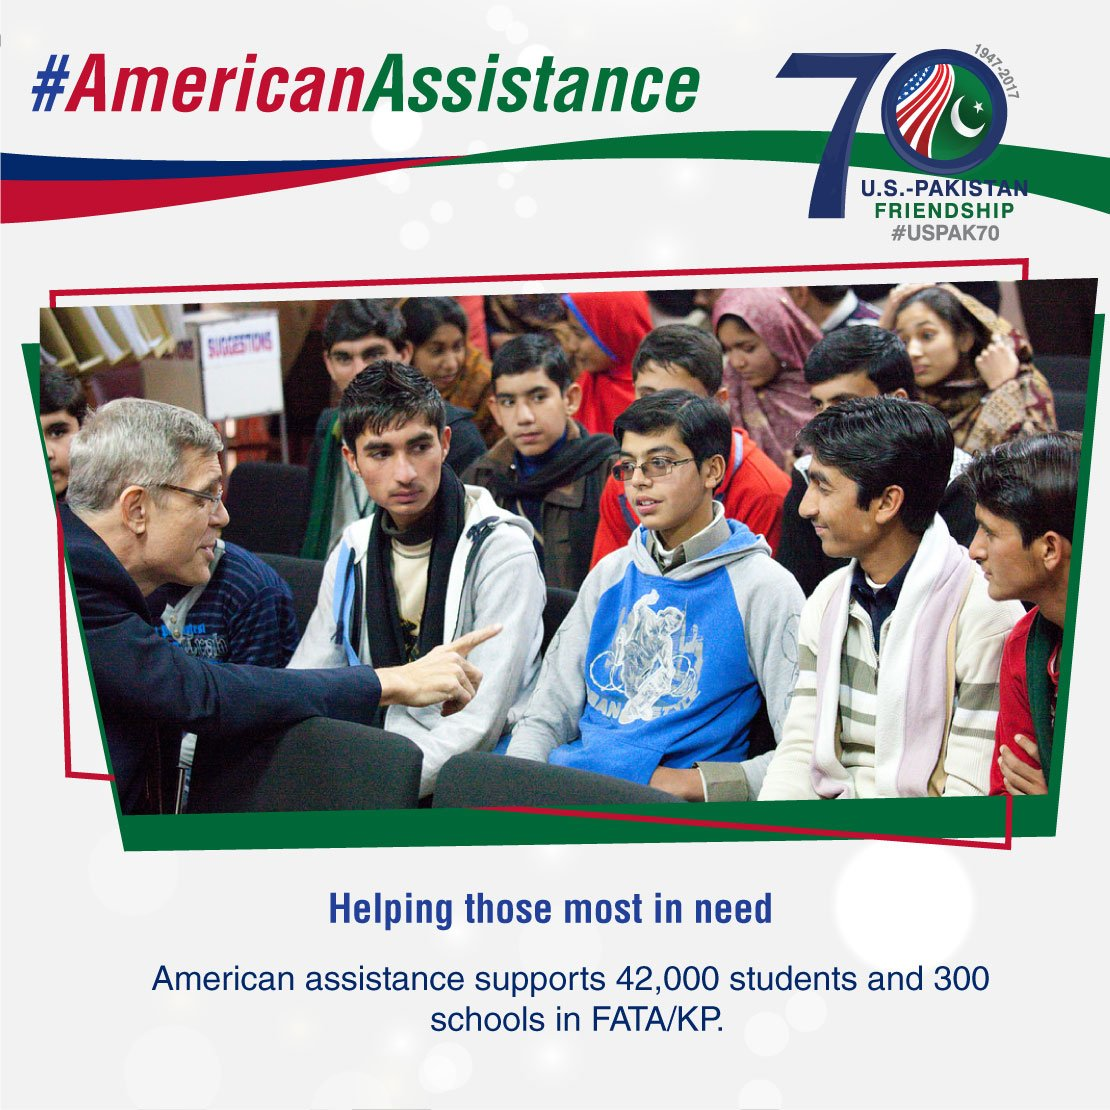 #AmericanAssistance supports 42,000 students and 300 schools in FATA/KP. #USPAK #USPAK70 #USEmbassyIsb